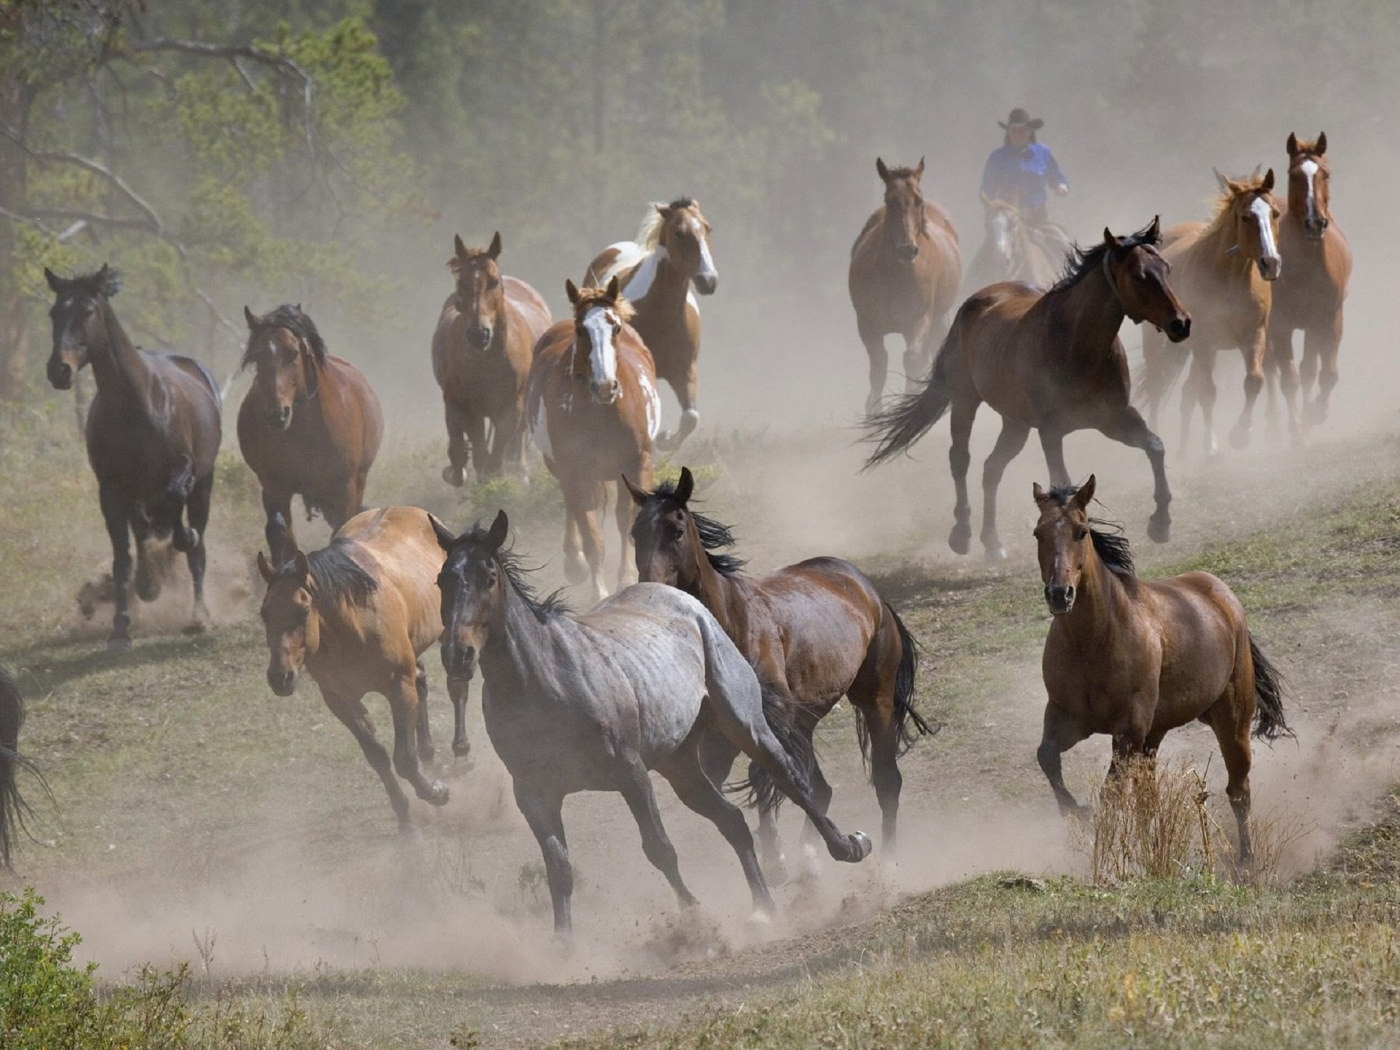 36081 download wallpaper Horses, Animals screensavers and pictures for free